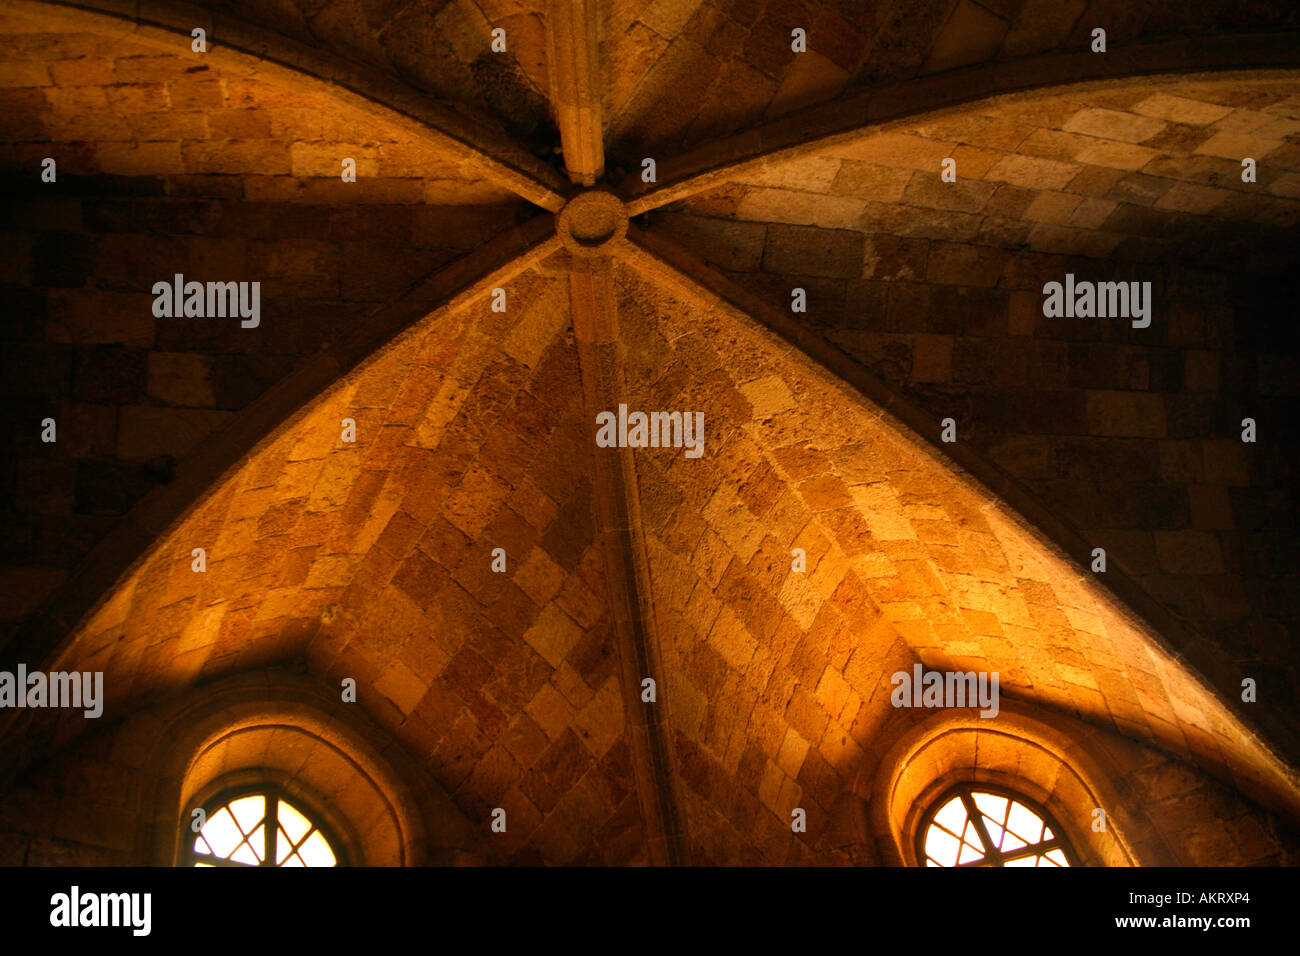 The wonderful ceiling of the church in the Filerimos acopolis, Rhodes - Stock Image